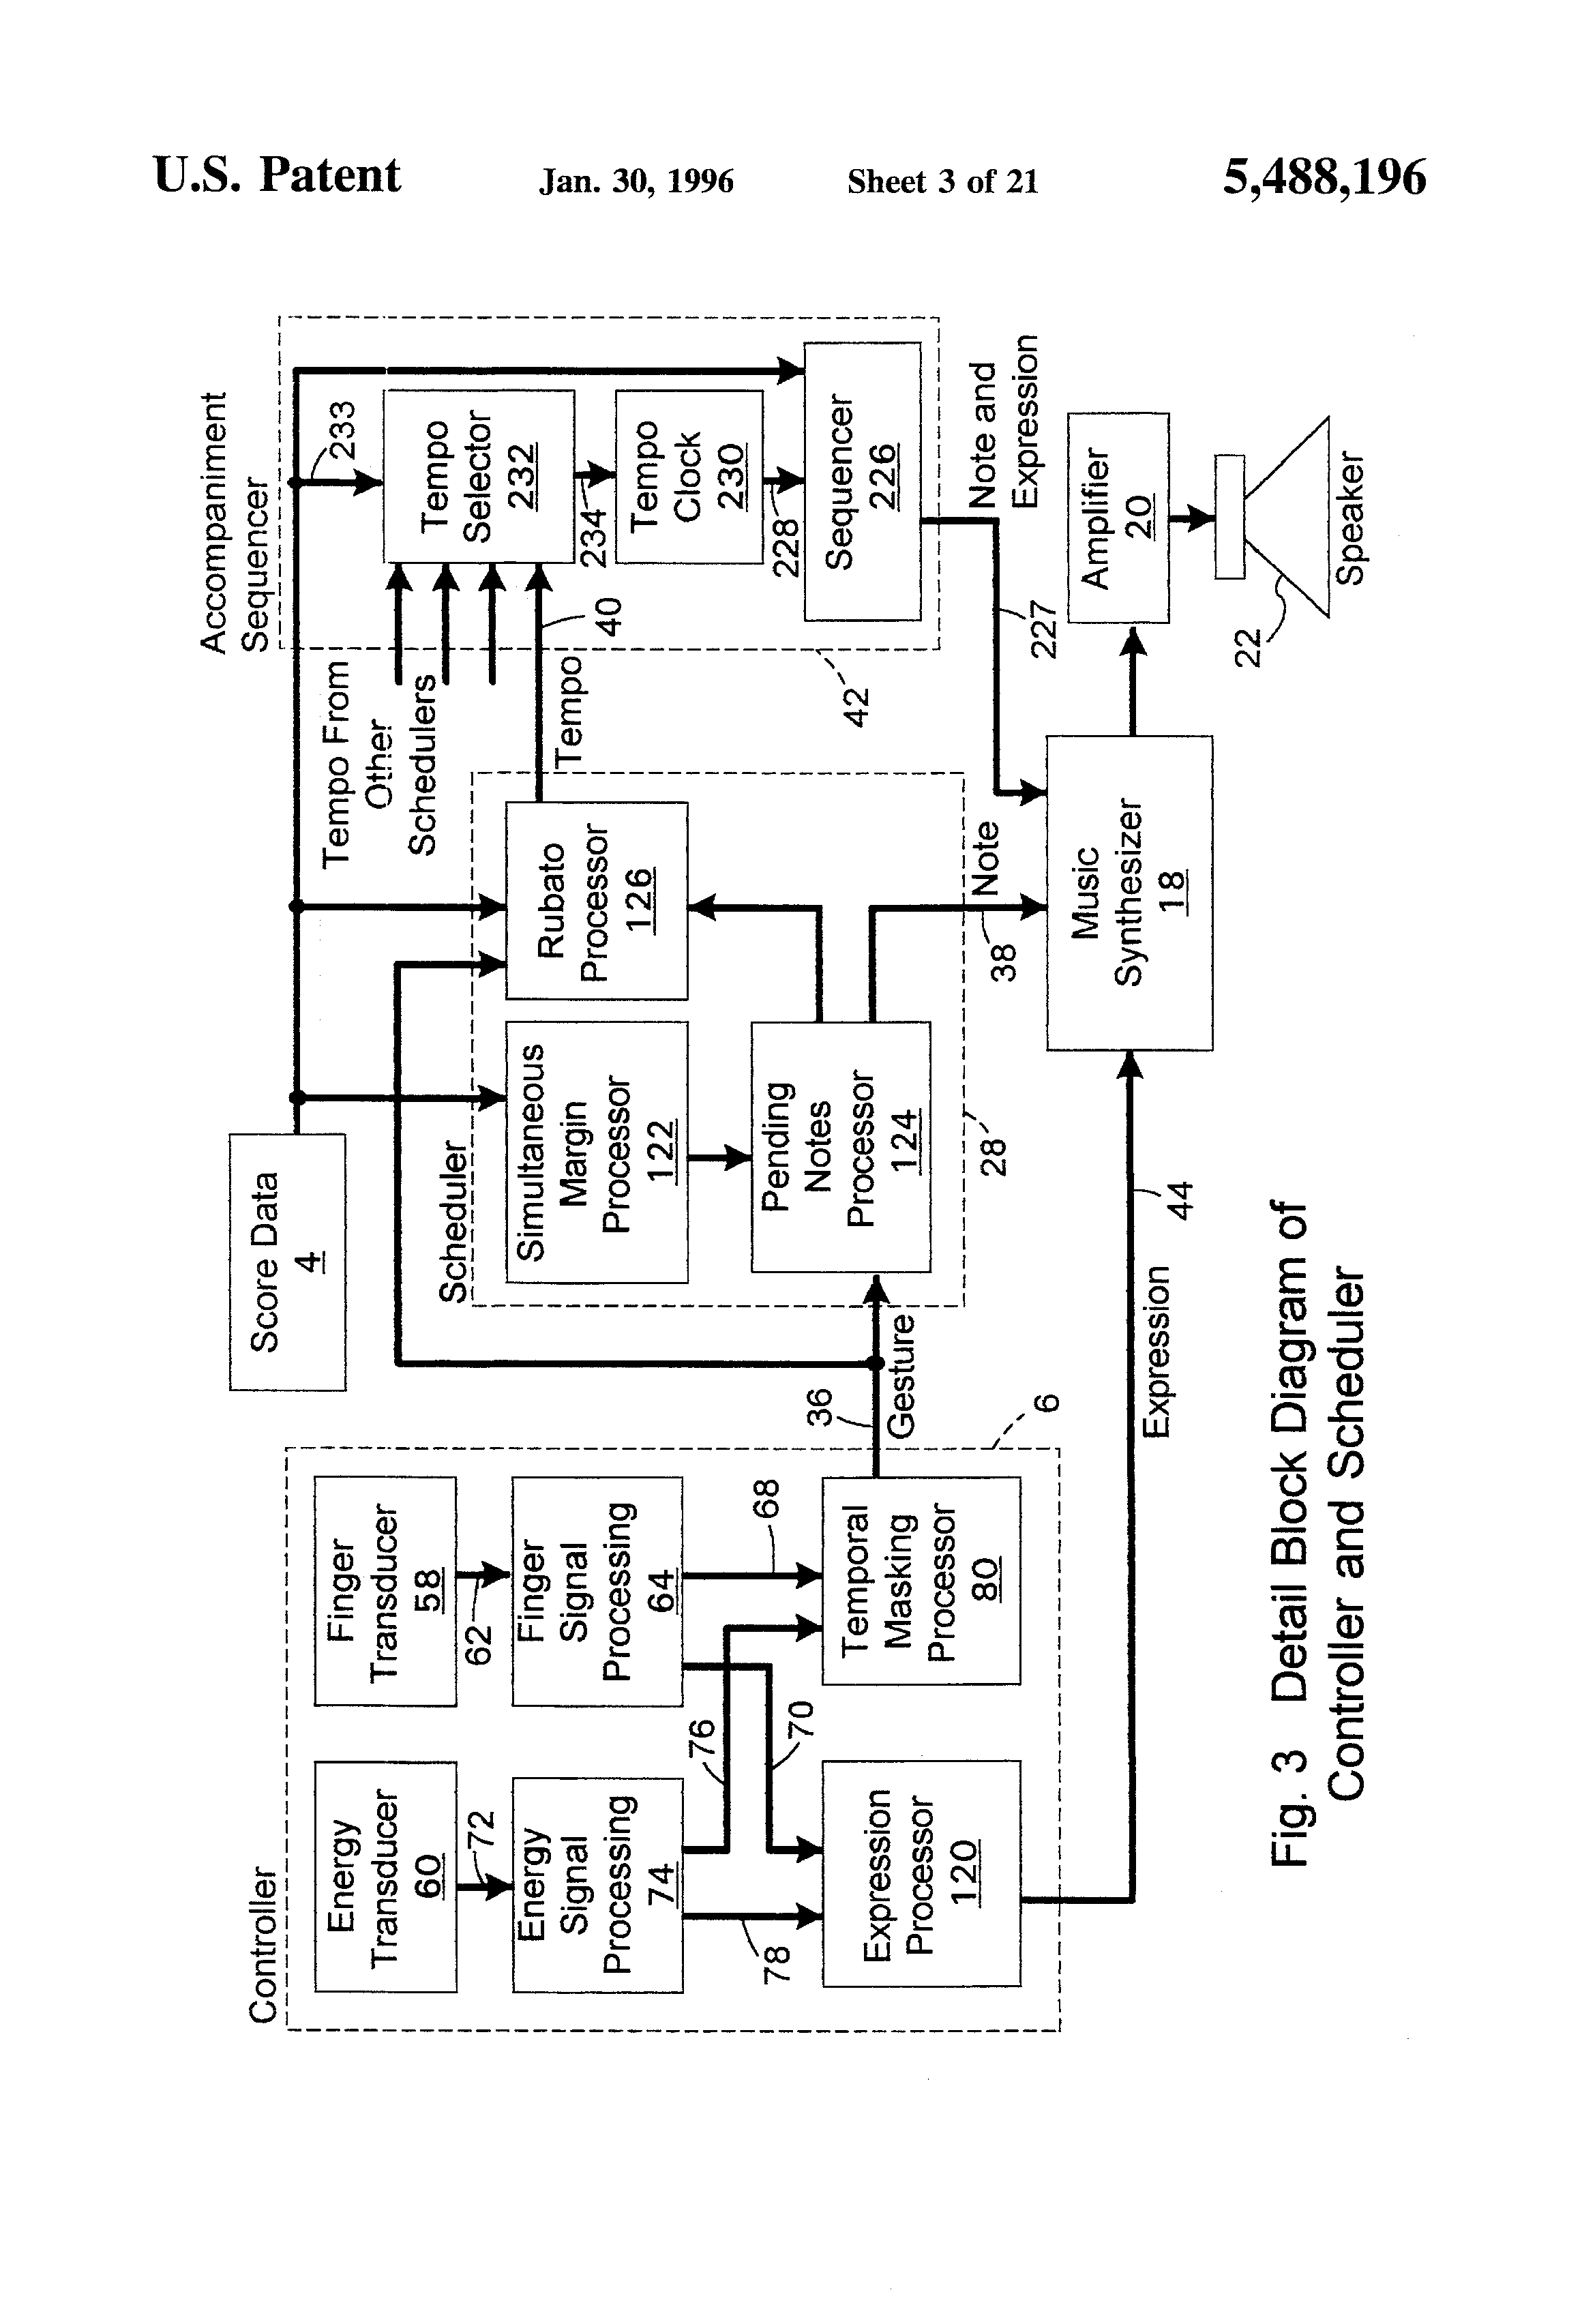 patent us electronic musical re performance and editing patent drawing